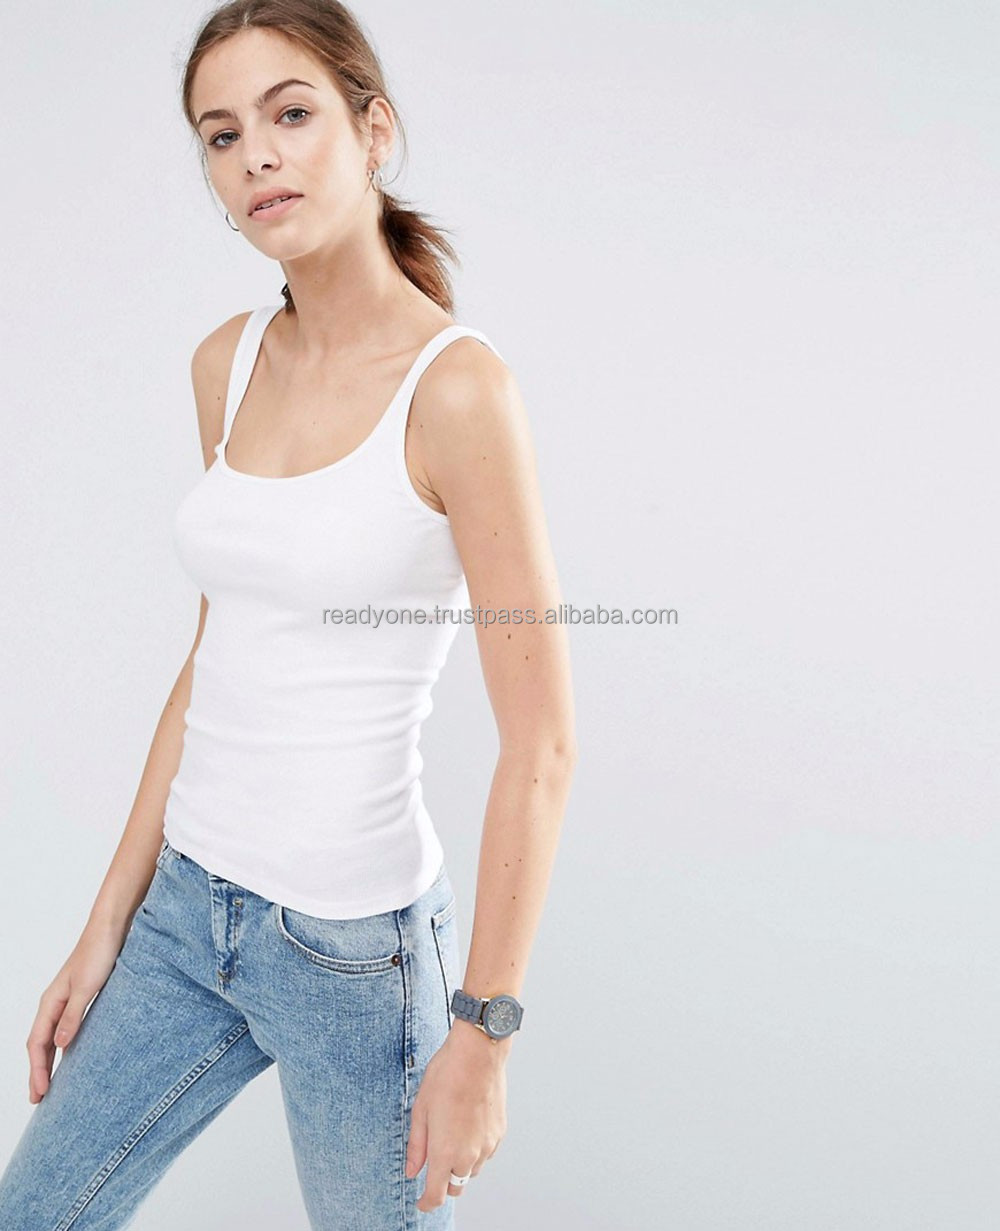 Oem High Quality 100 Cotton Sleeveless Tank Top Women Multicolor Plain Soft Leisure Crop Top